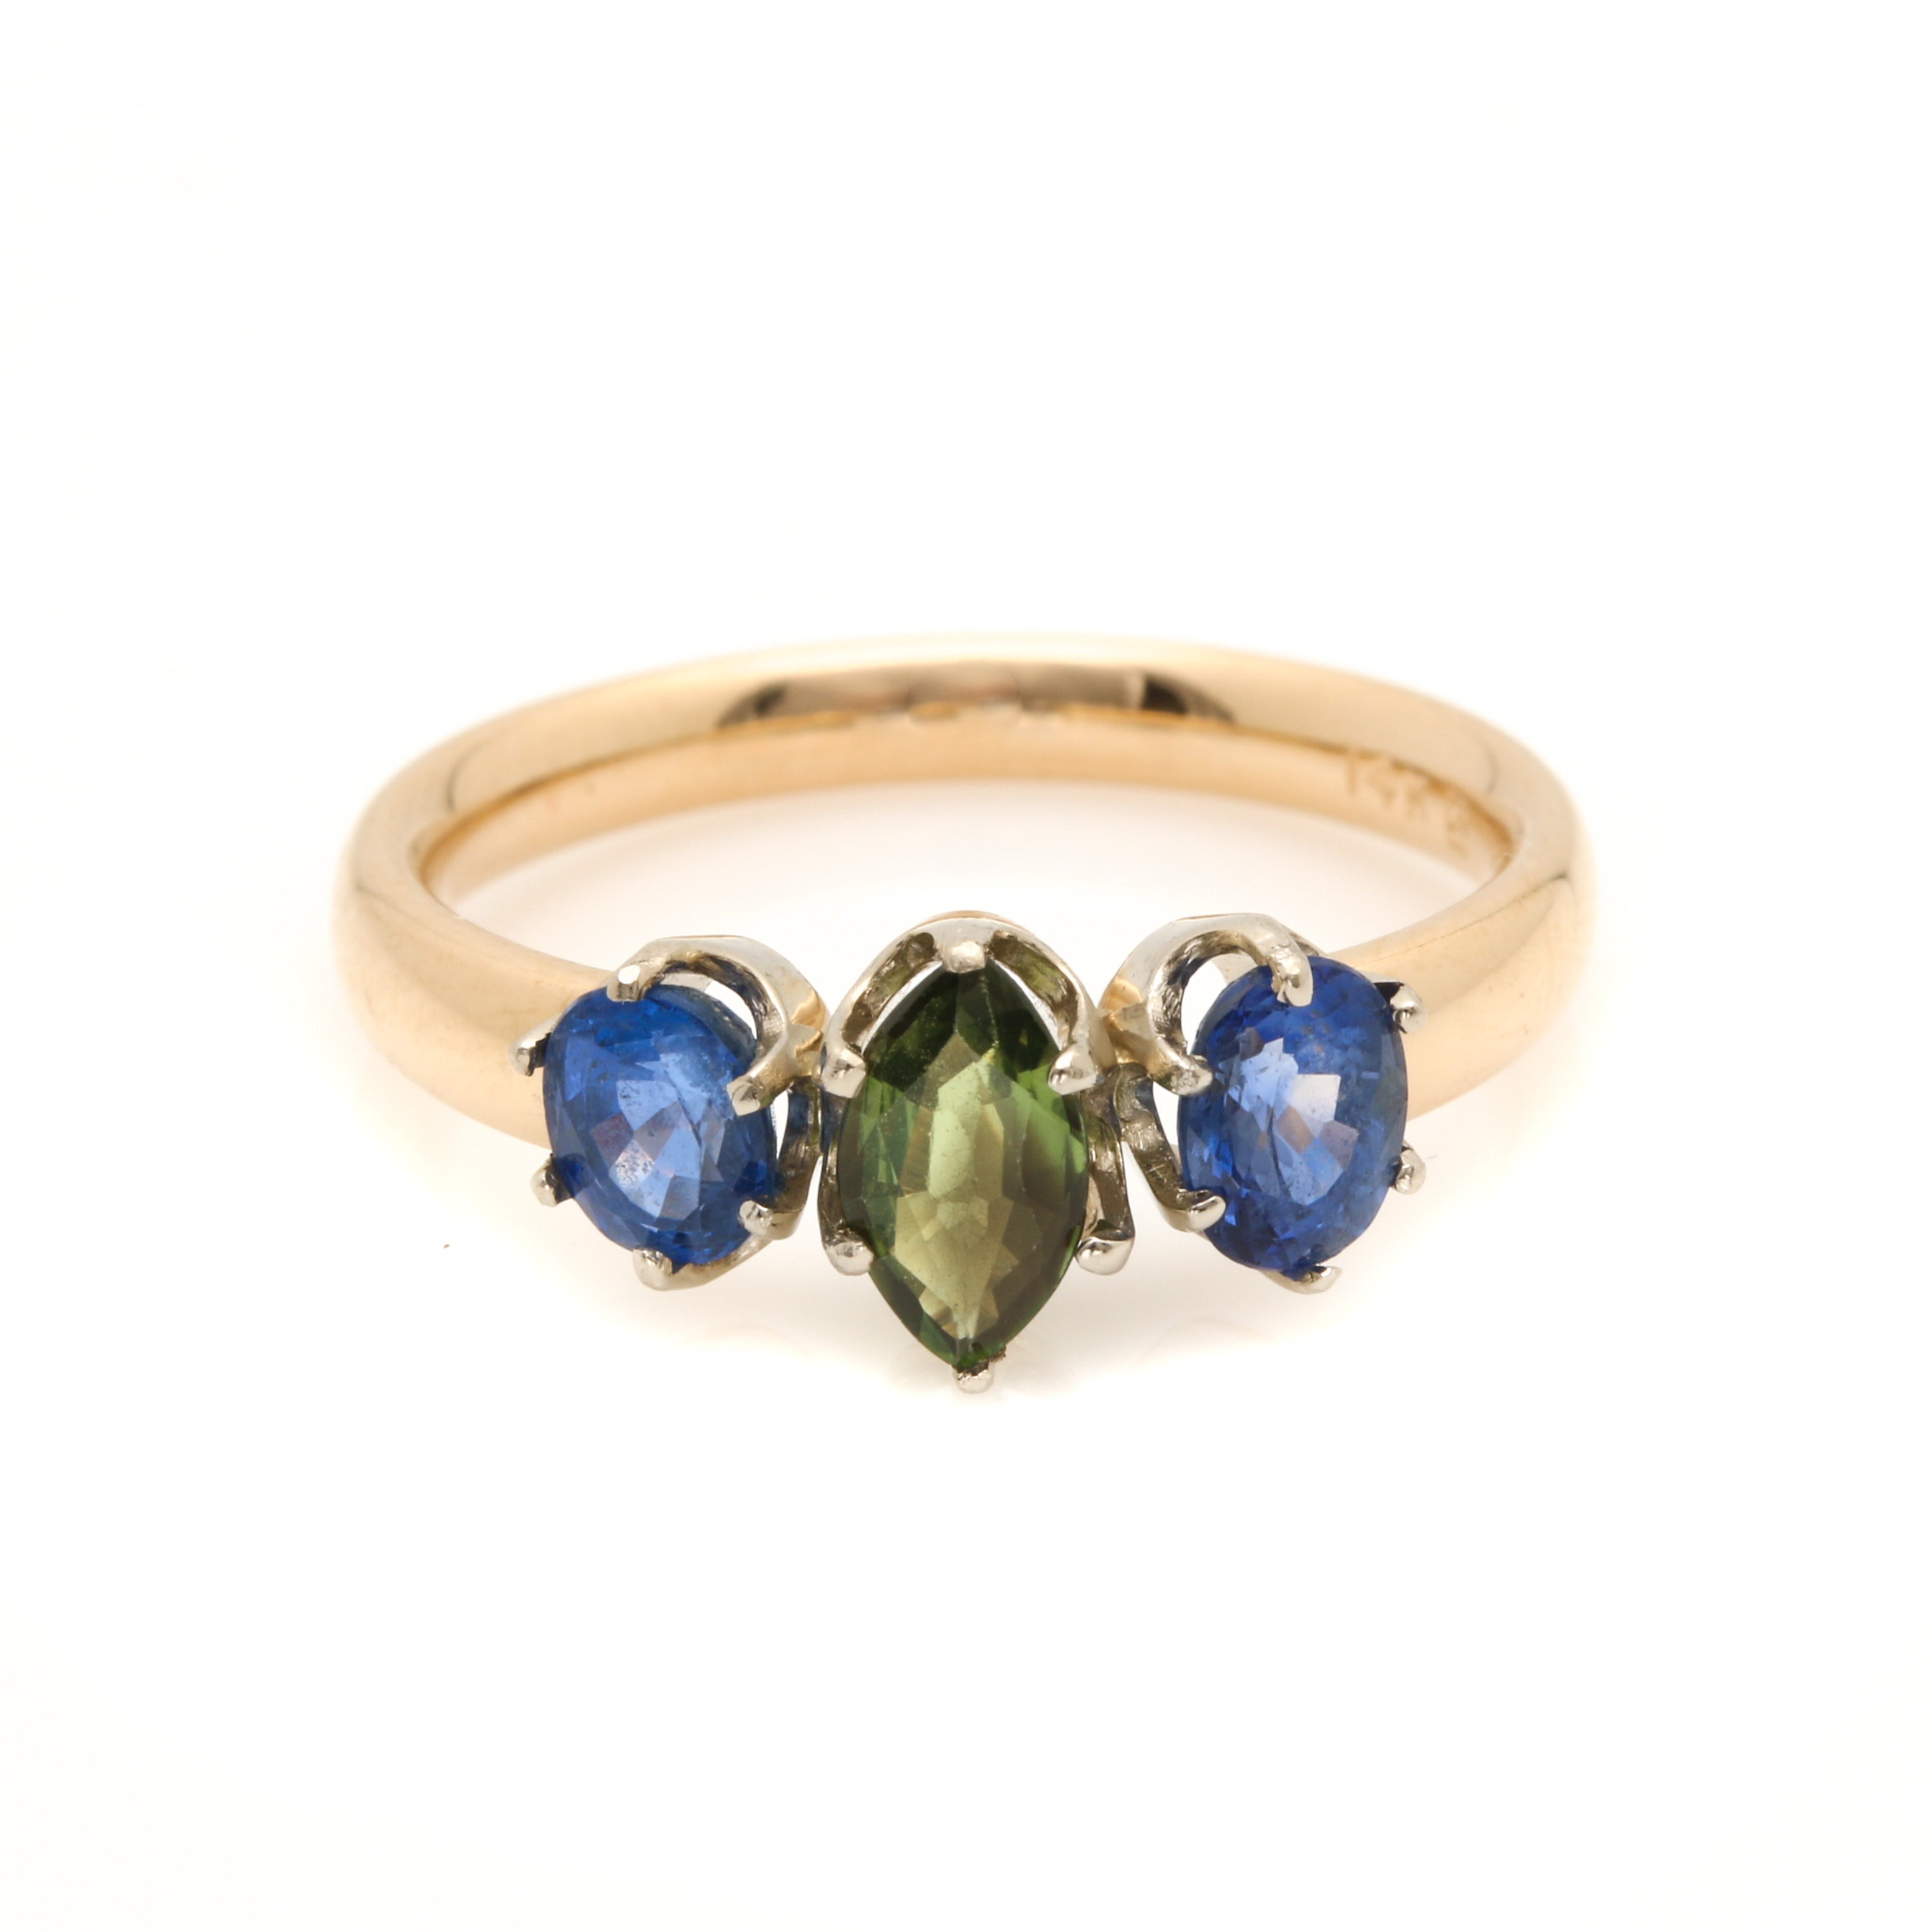 14K Yellow Gold Sapphire Ring With White Gold Accent